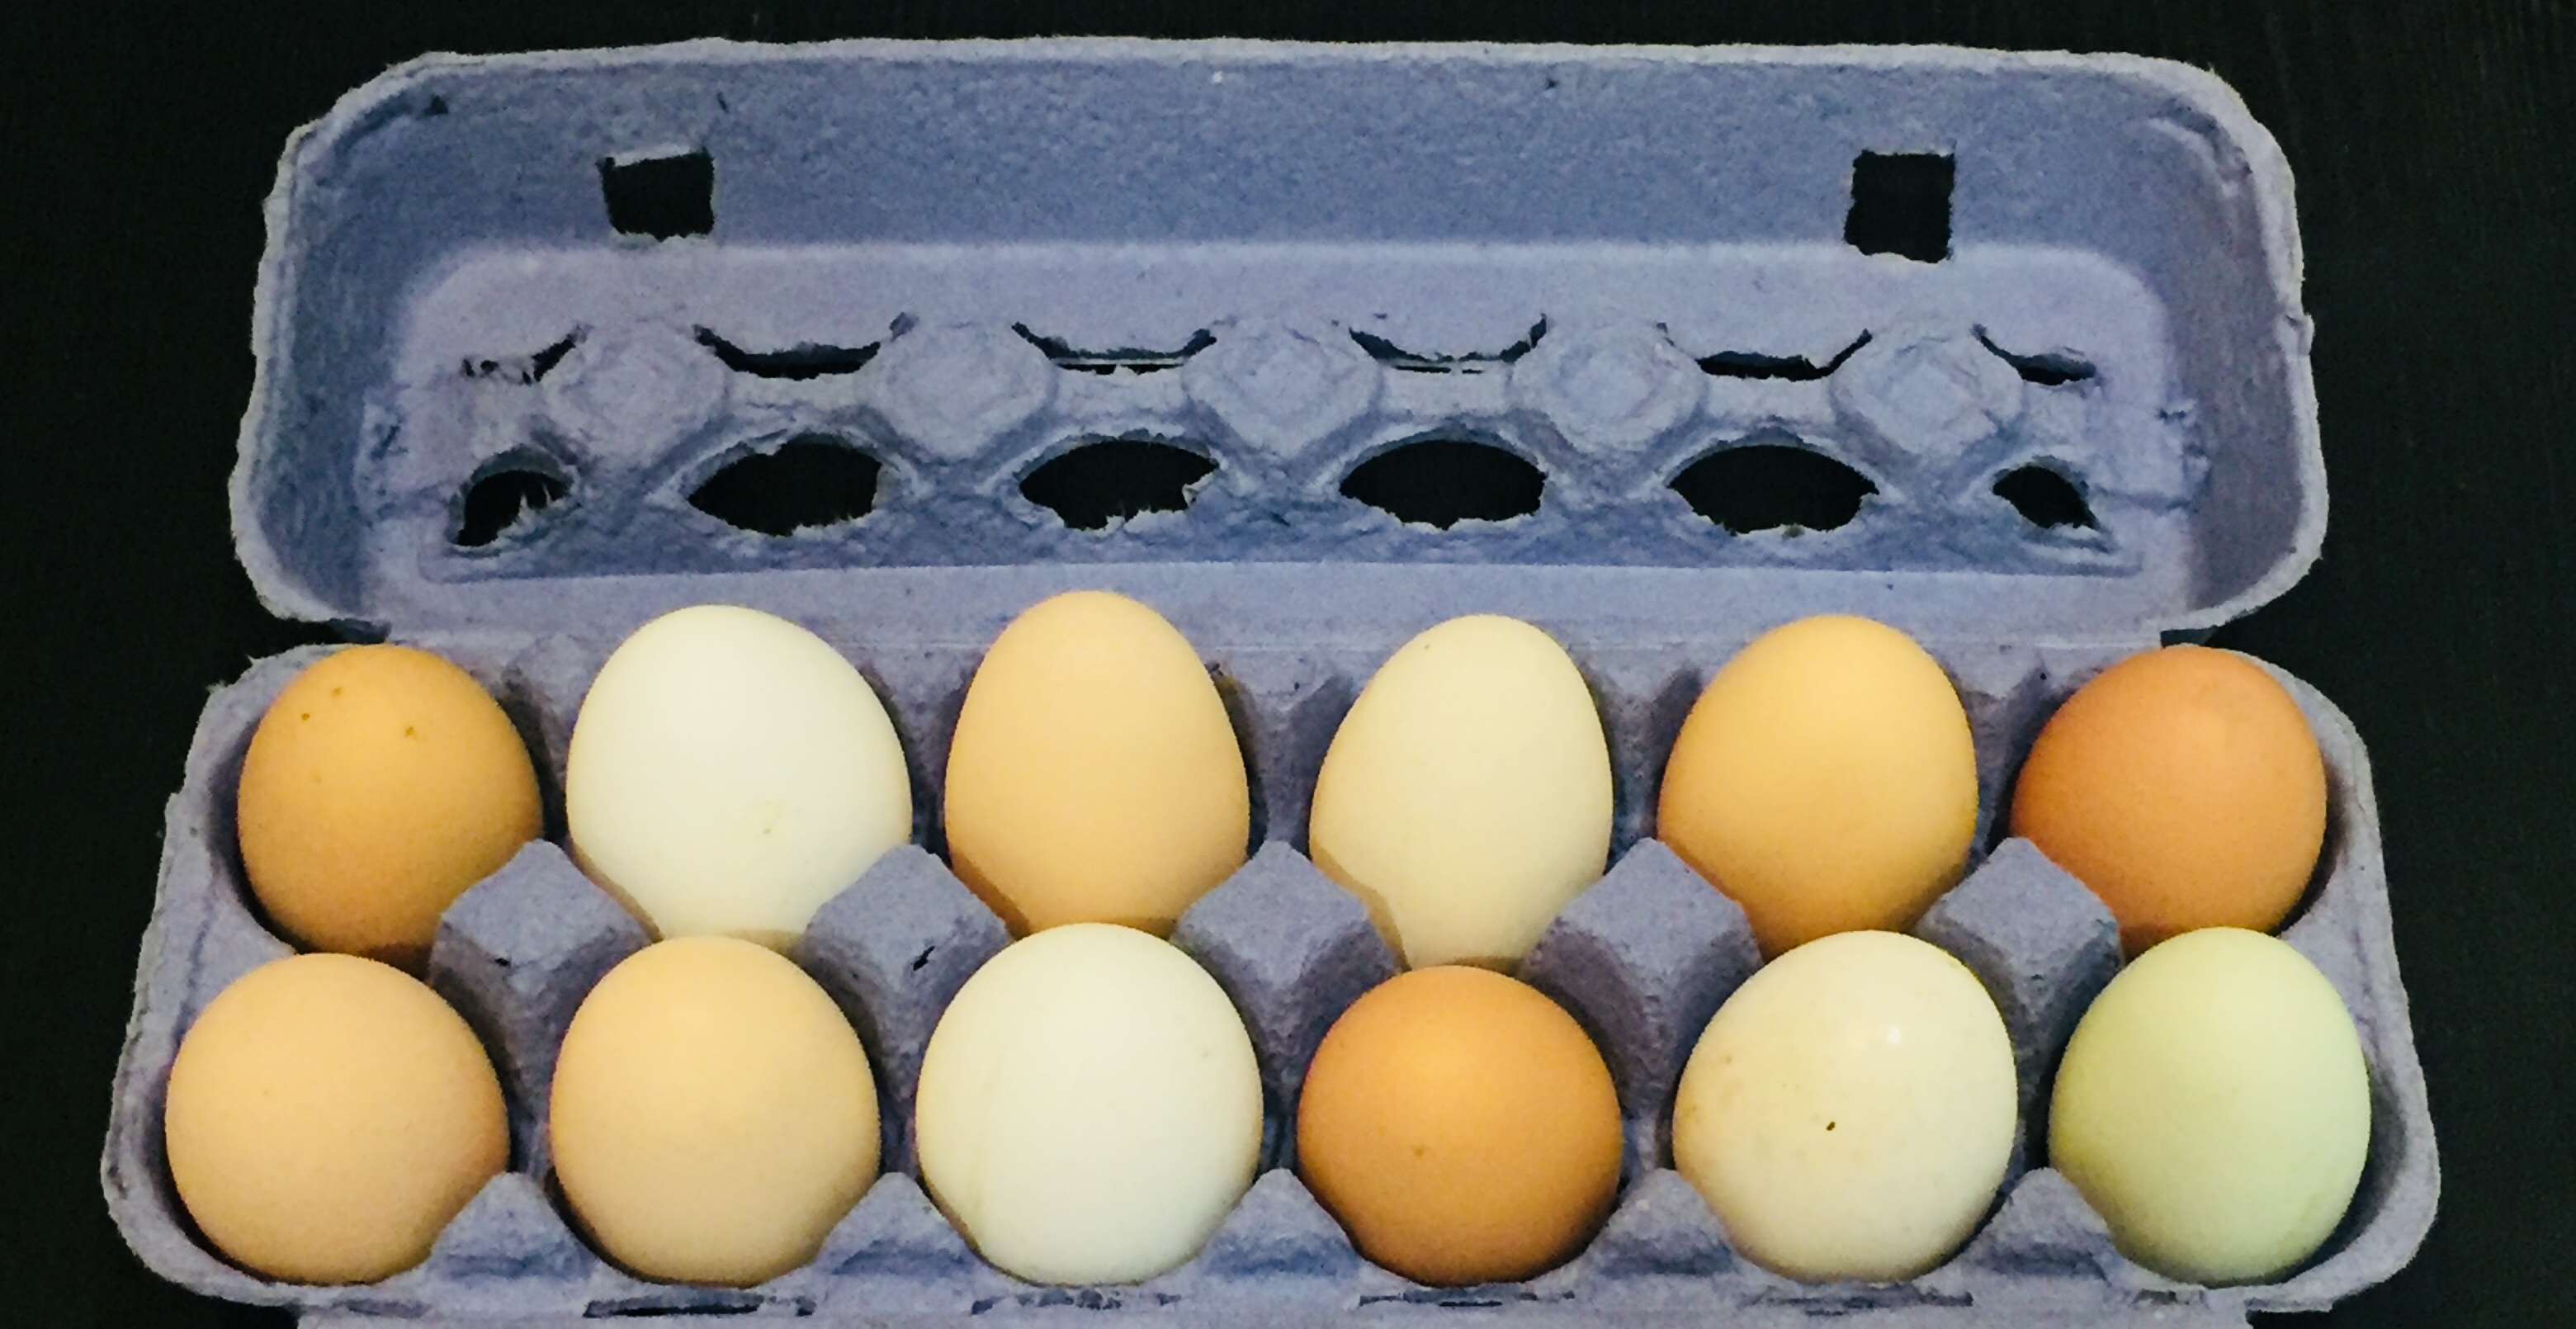 http://blueskyorganicfarms.com/wp-content/uploads/2018/02/Egg-Photo.jpg